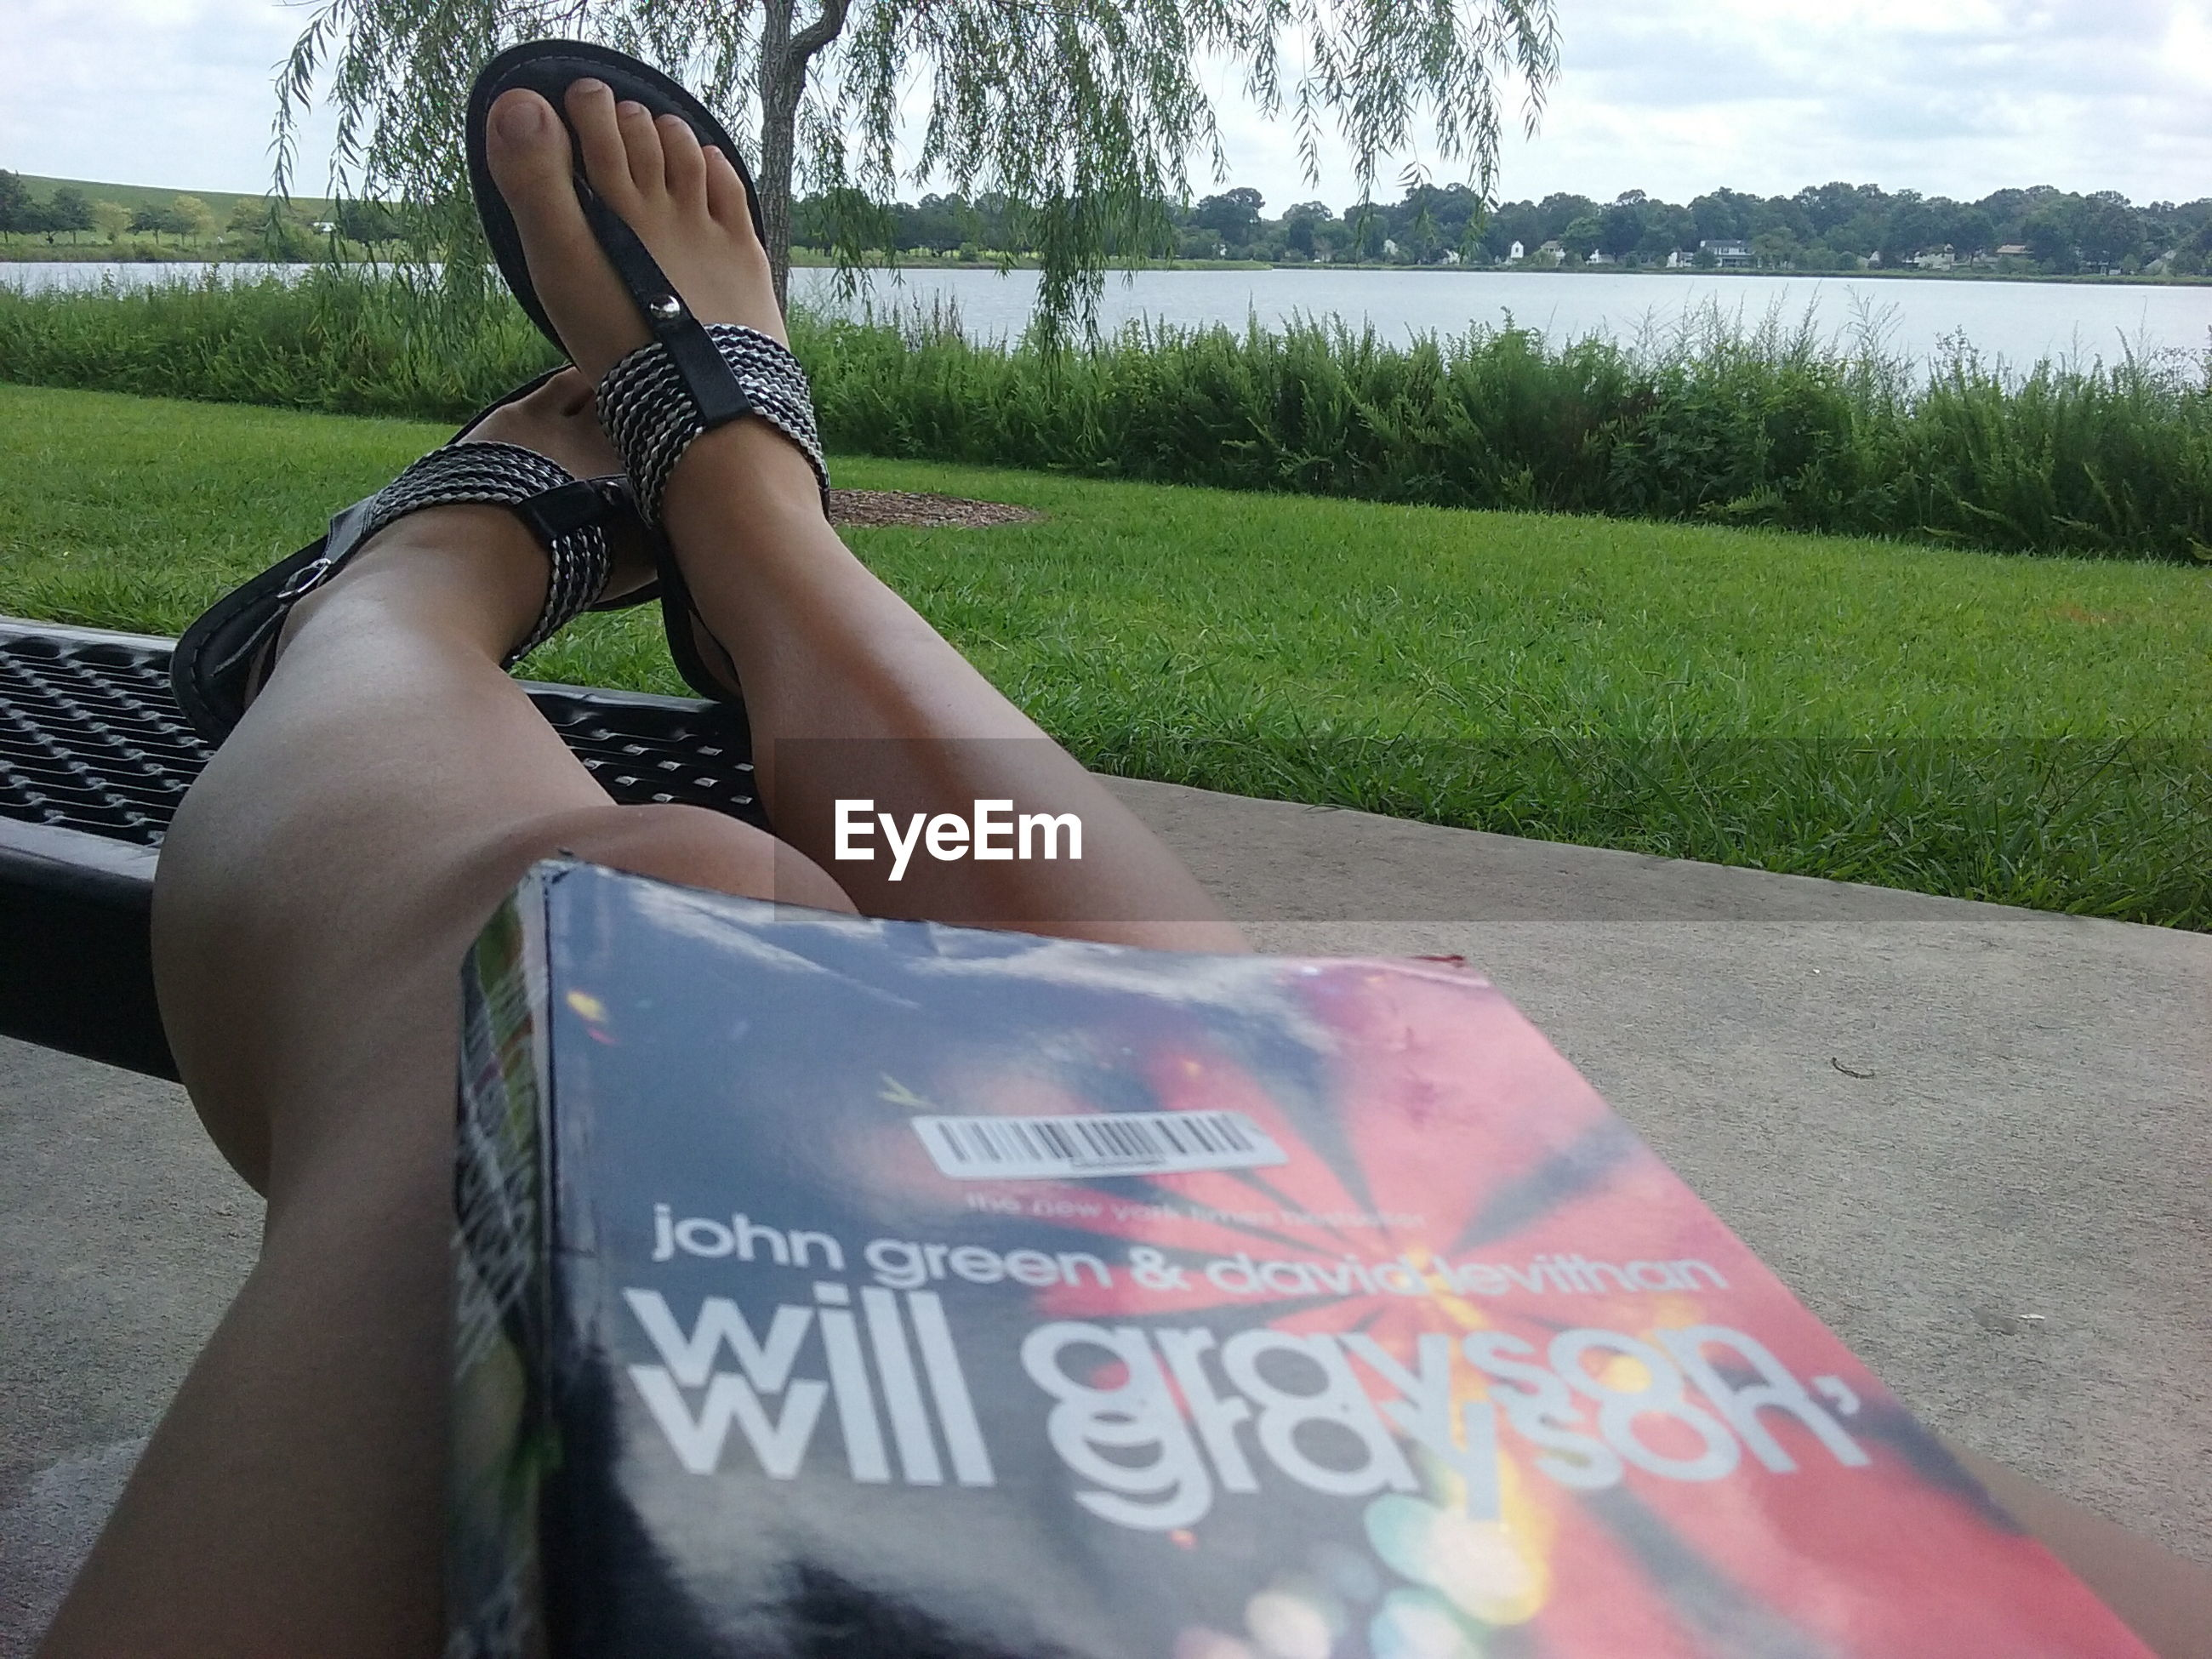 text, western script, grass, lake, relaxation, person, tranquil scene, field, water, tranquility, footpath, outdoors, lying down, growth, day, personal perspective, non-urban scene, young adult, grassy